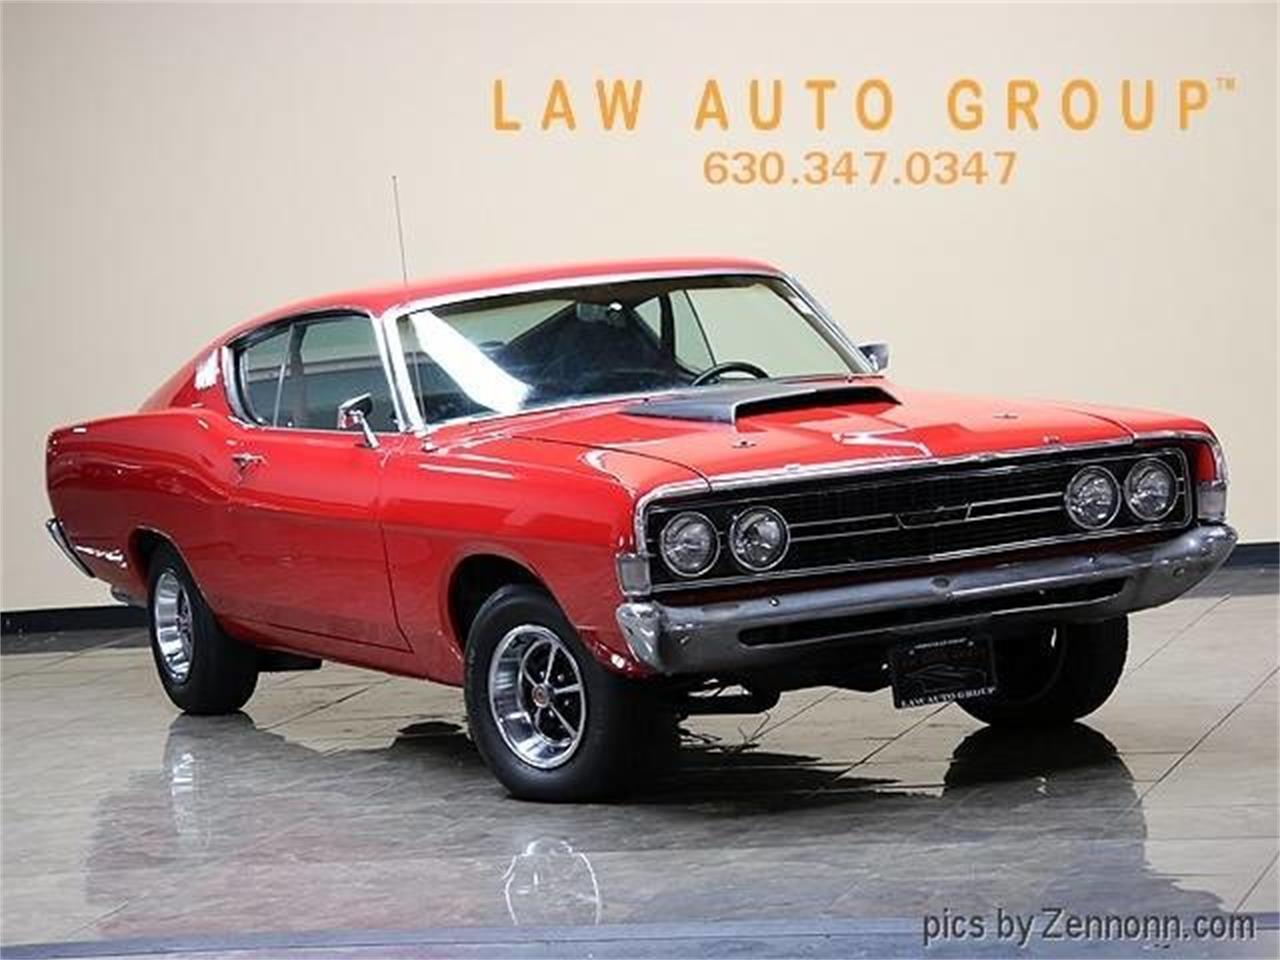 Law Auto Group >> 1968 Ford Torino Project Car For Sale Classiccars Com Cc 854790